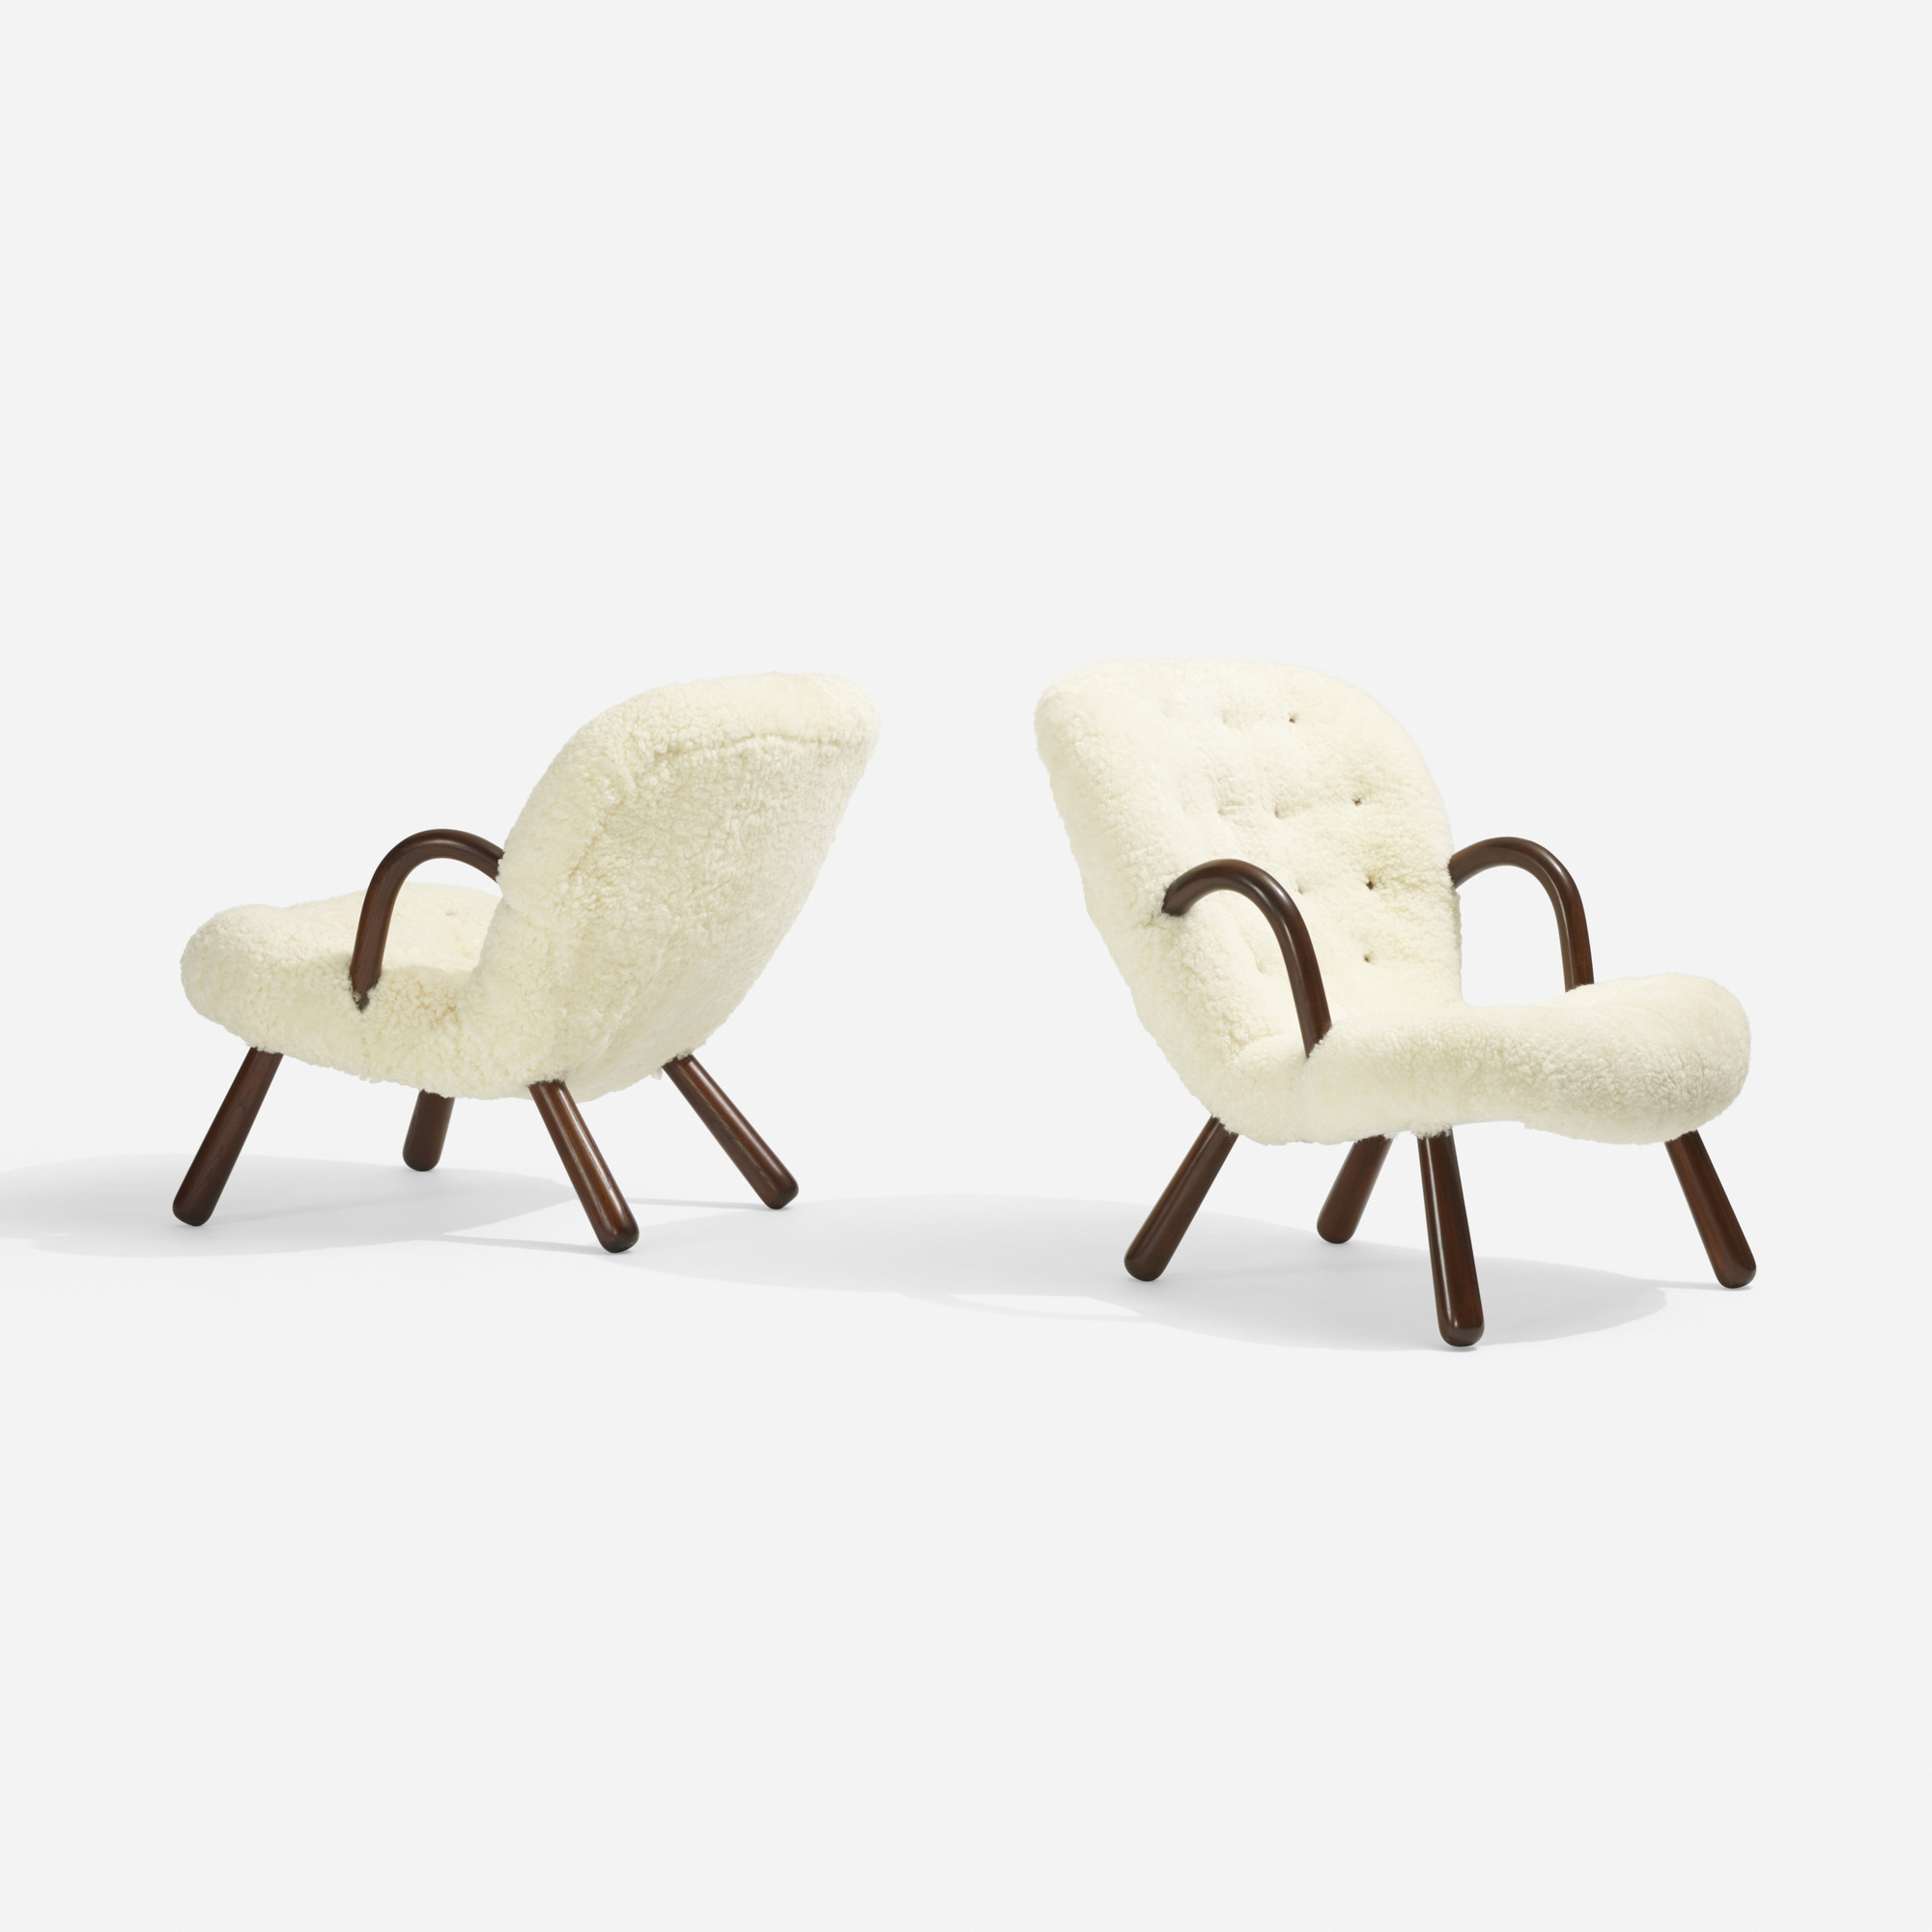 308: Philip Arctander / lounge chairs, pair (2 of 3)